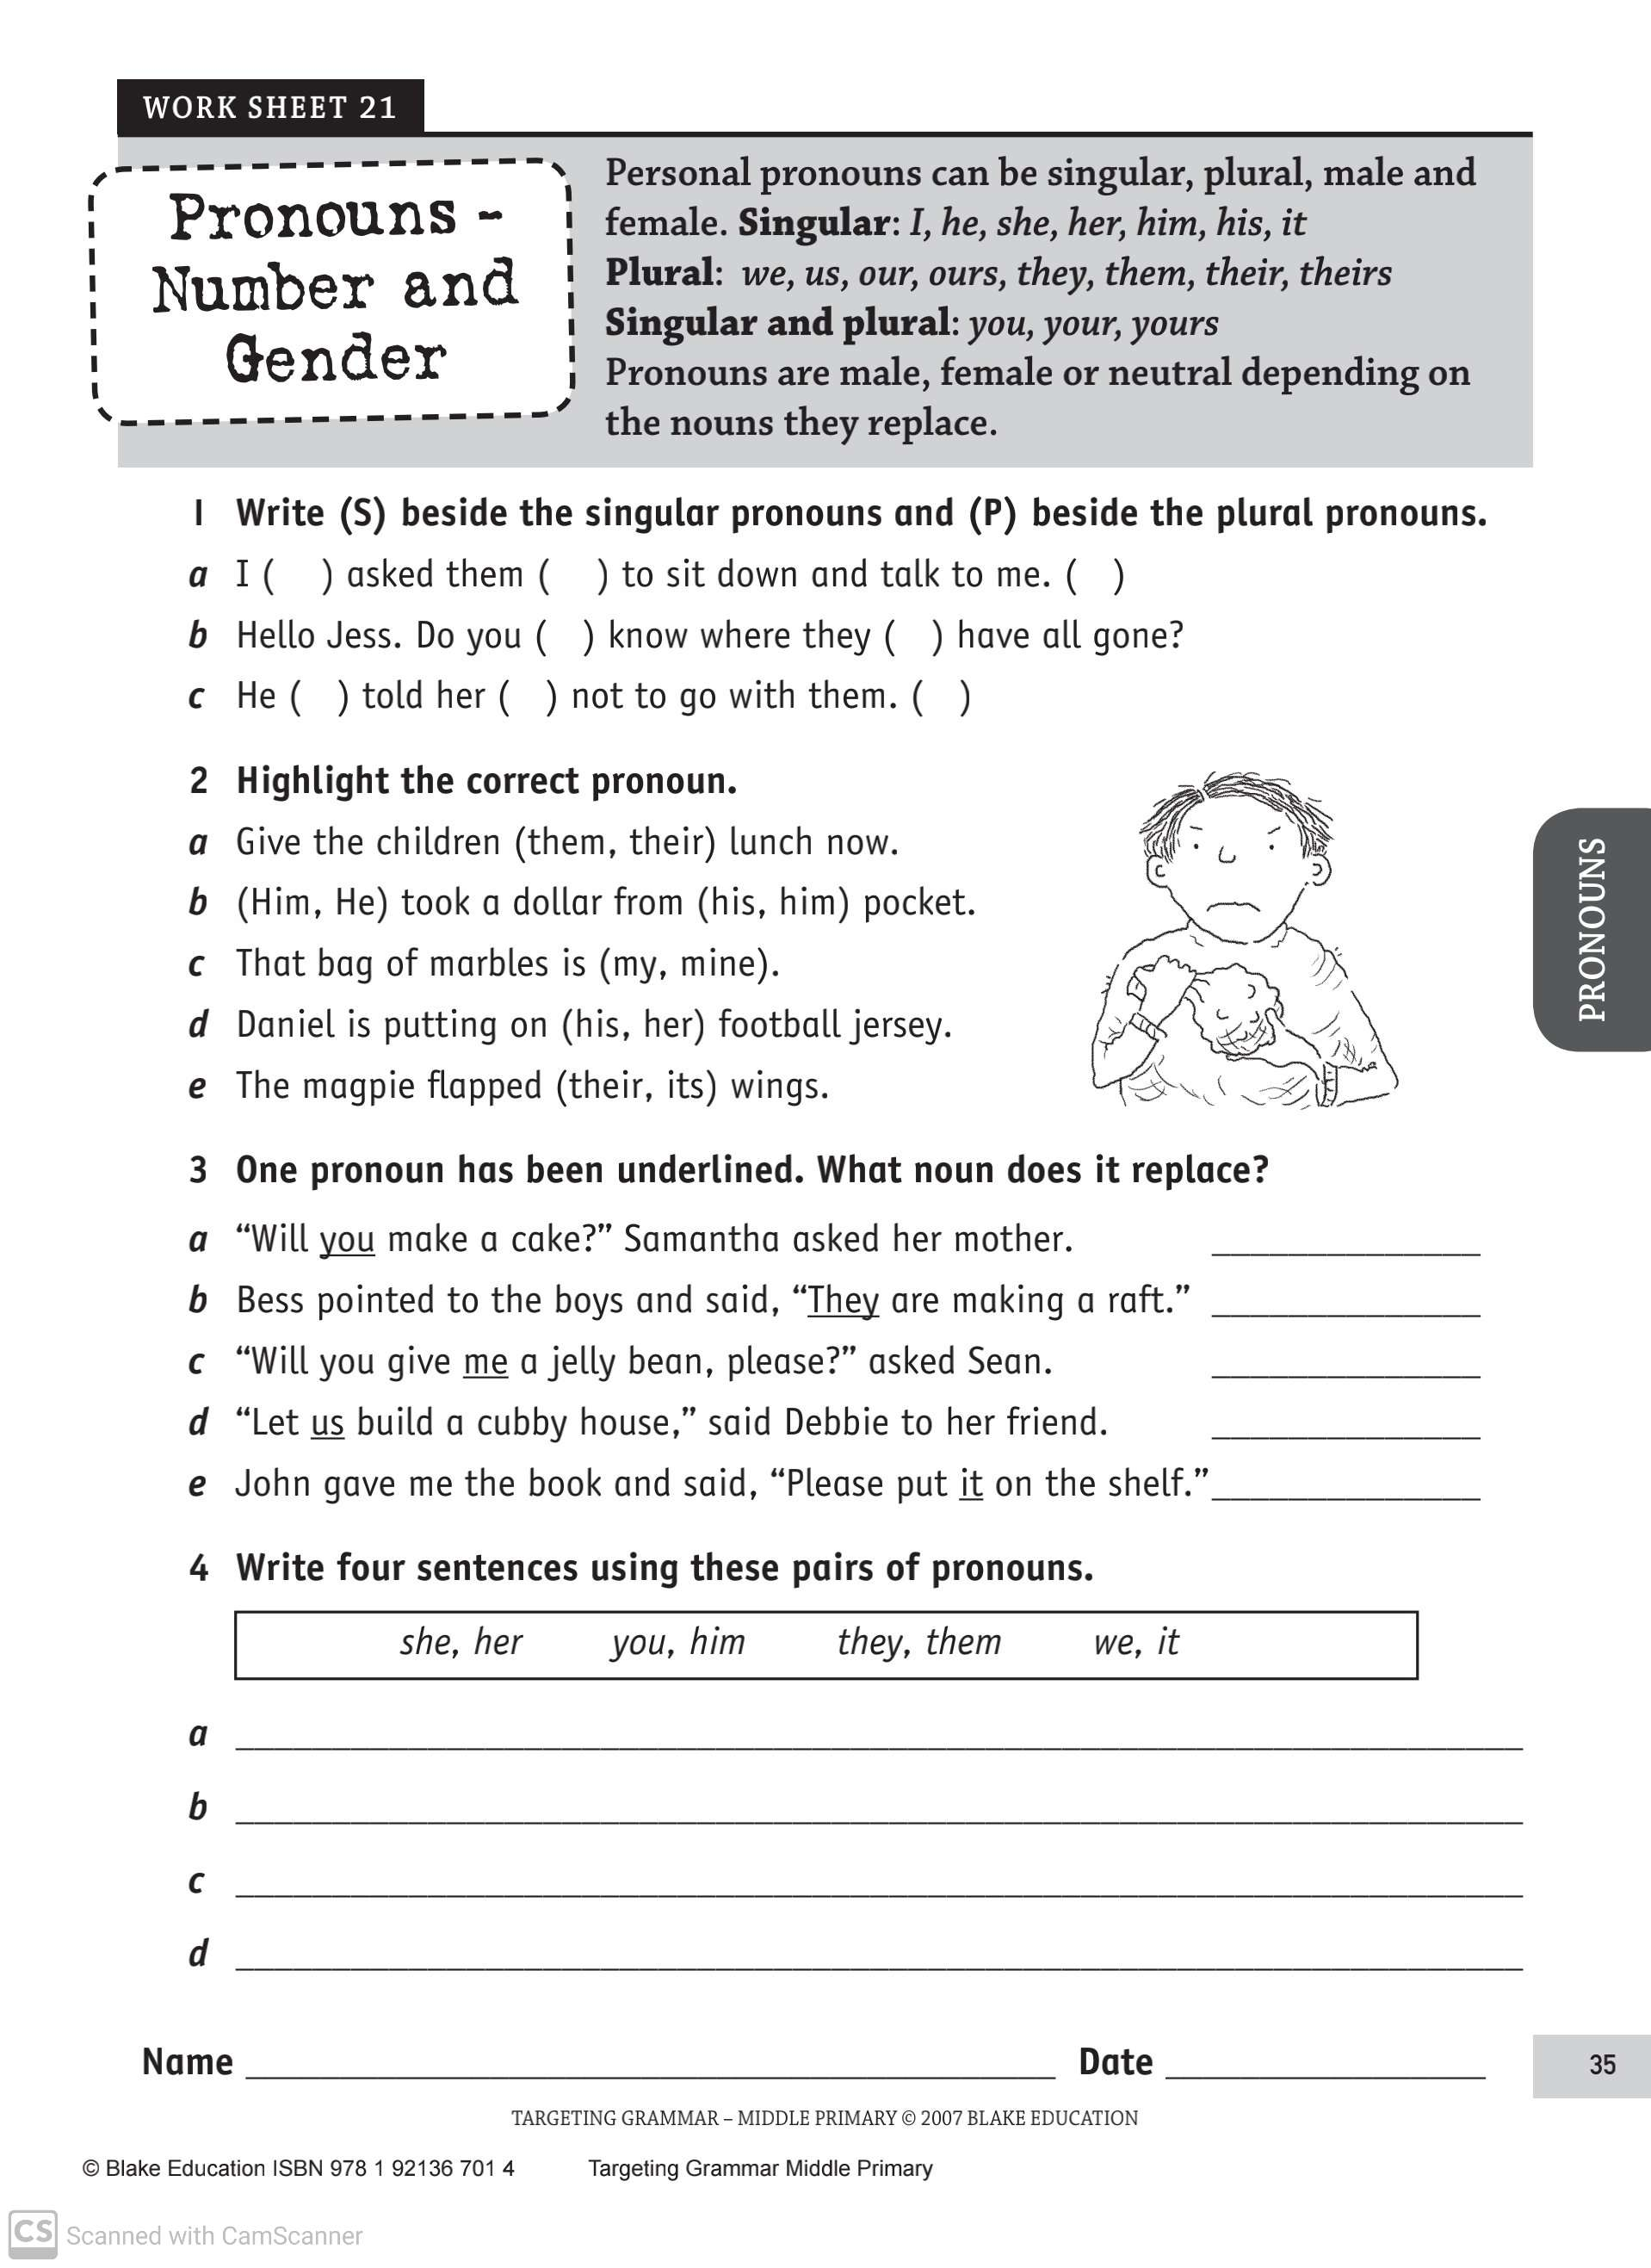 Pronouns Worksheets For Grade 3 Teaching Kids To Read